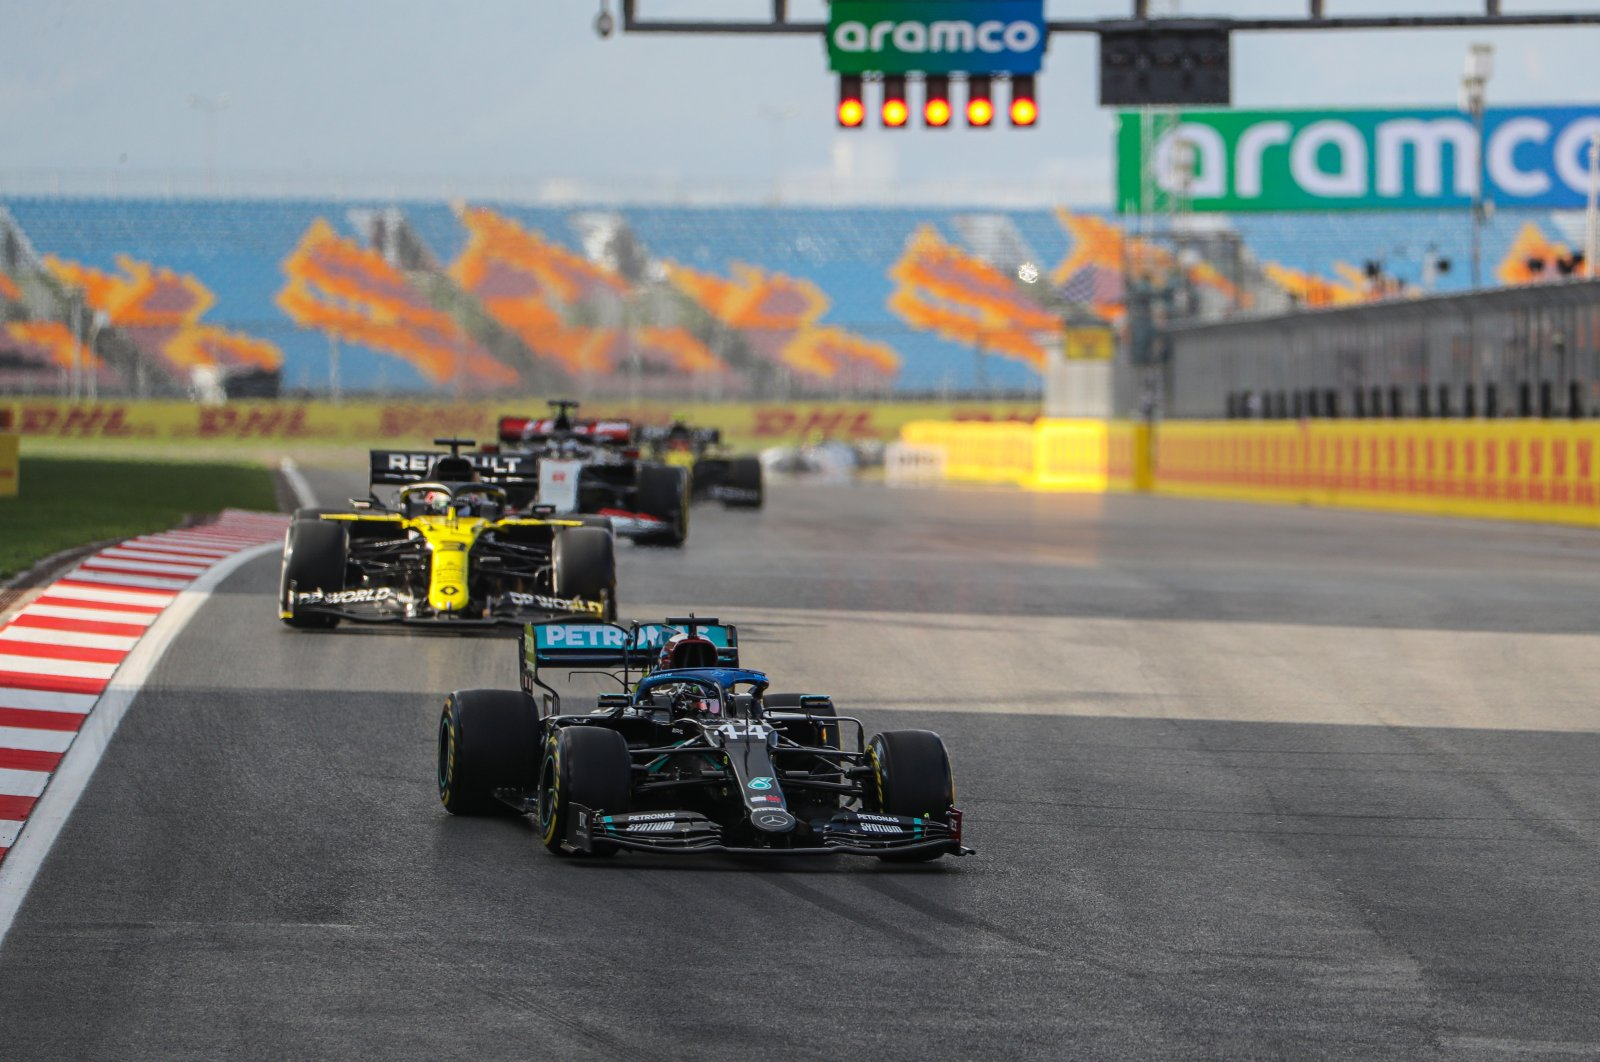 Mercedes driver Lewis Hamilton takes the lead during a practice session ahead of the Turkish Grand Prix in Istanbul, Turkey, Nov. 13, 2020. (AA Photo)